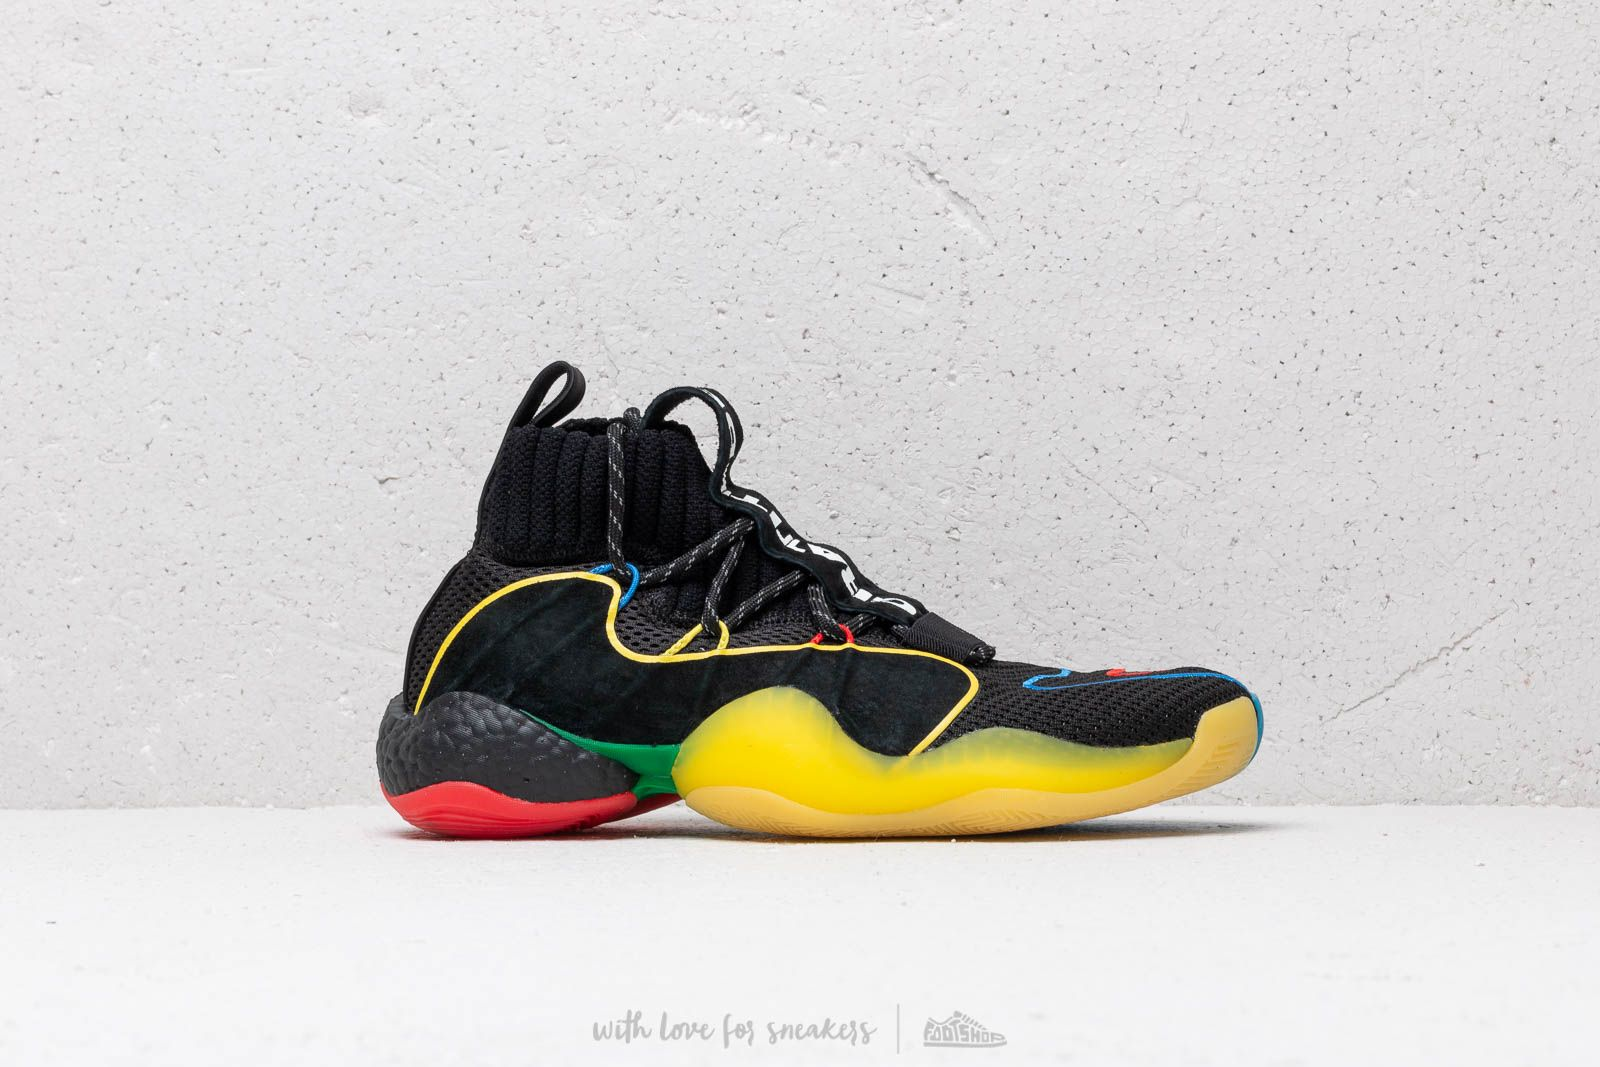 040afeee31e68 adidas x Pharrell Williams Crazy BYW